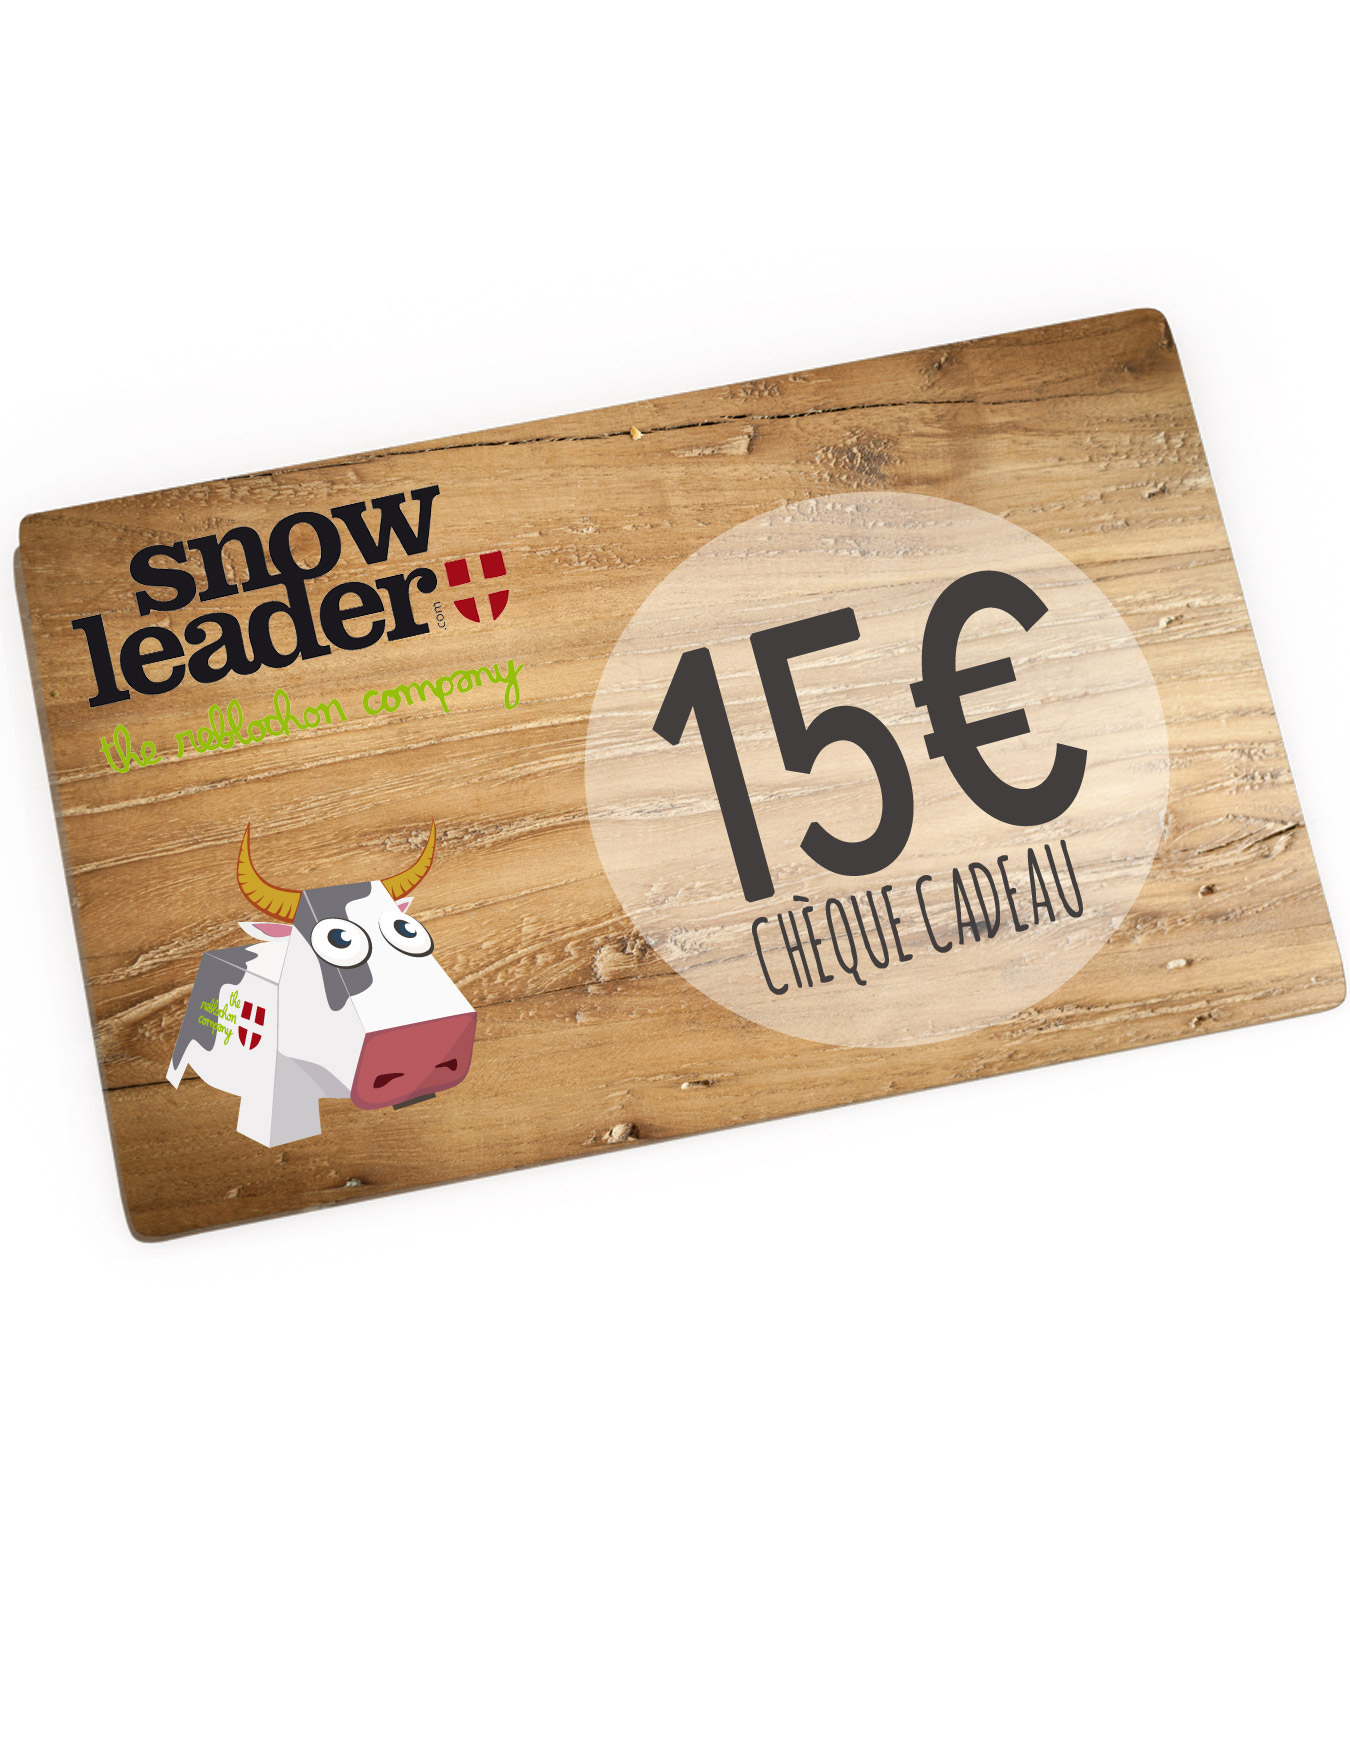 Snowleader  Gift Vouchers And Gift Cheques For Wintersports Lovers 428d47669c2